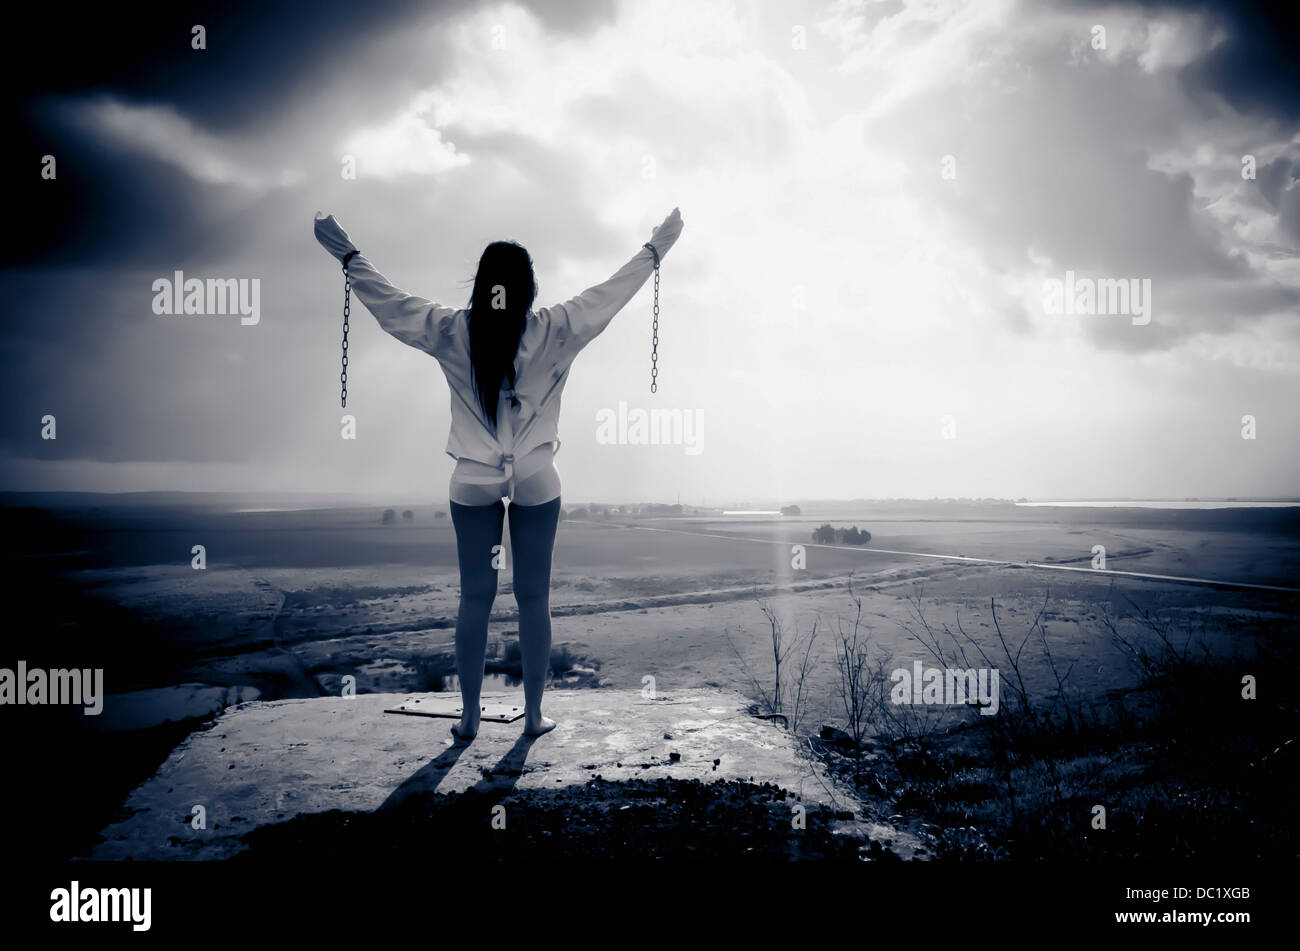 Woman wearing chains and straitjacket looking out over land - Stock Image